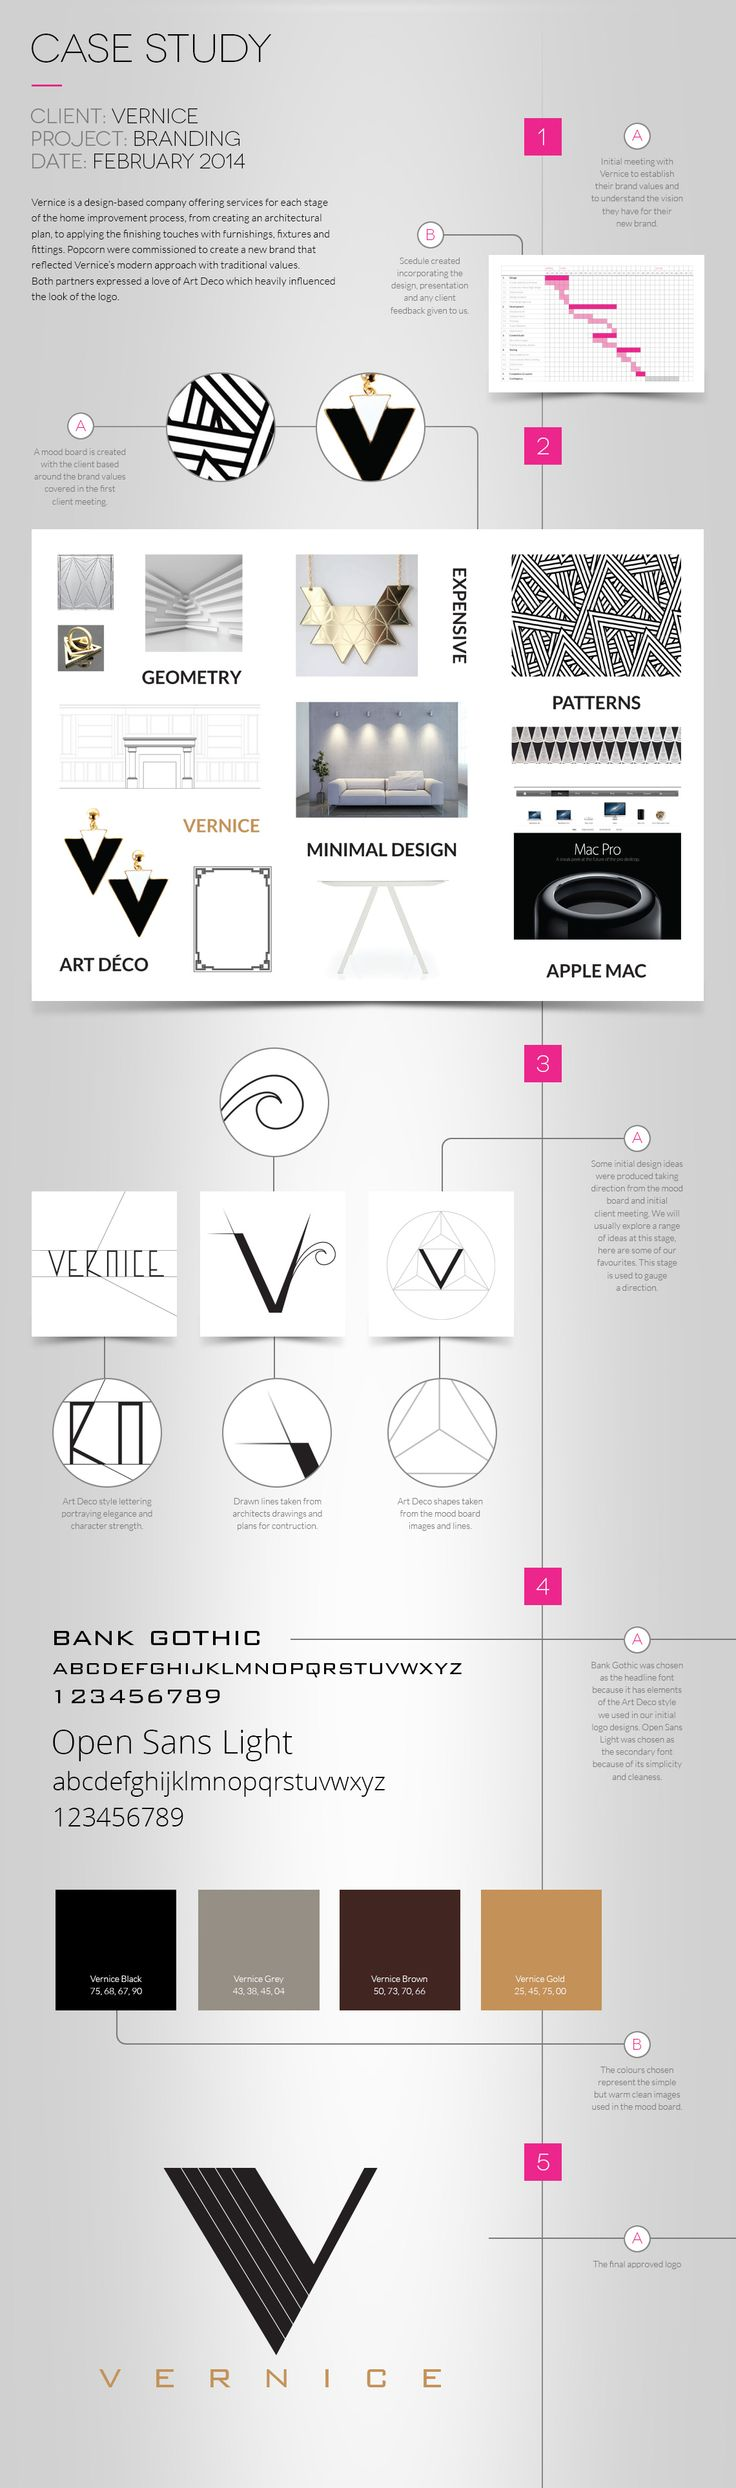 52 best love for logo images on pinterest logos logo ideas and